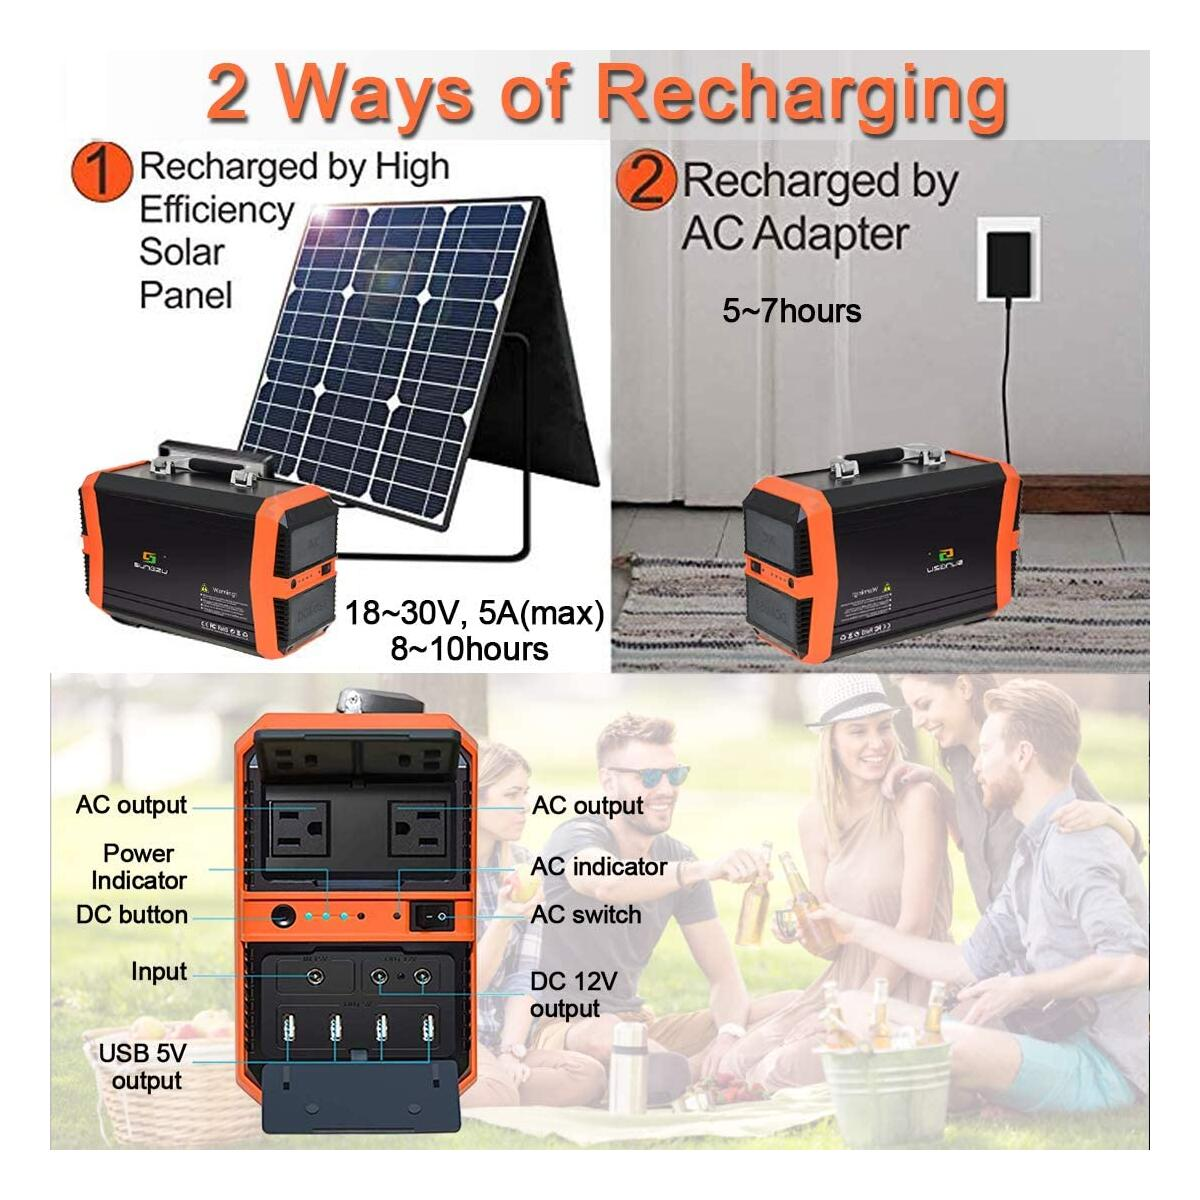 SUNGZU Portable Generator Power Station 300W Solar Generator CPAP Battery Backup for Camping Outdoor Home Emergency 300 watt 346Wh 11.1V/31.2Ah Quiet Rechargeable Power Supply with 2AC 2DC 4USB